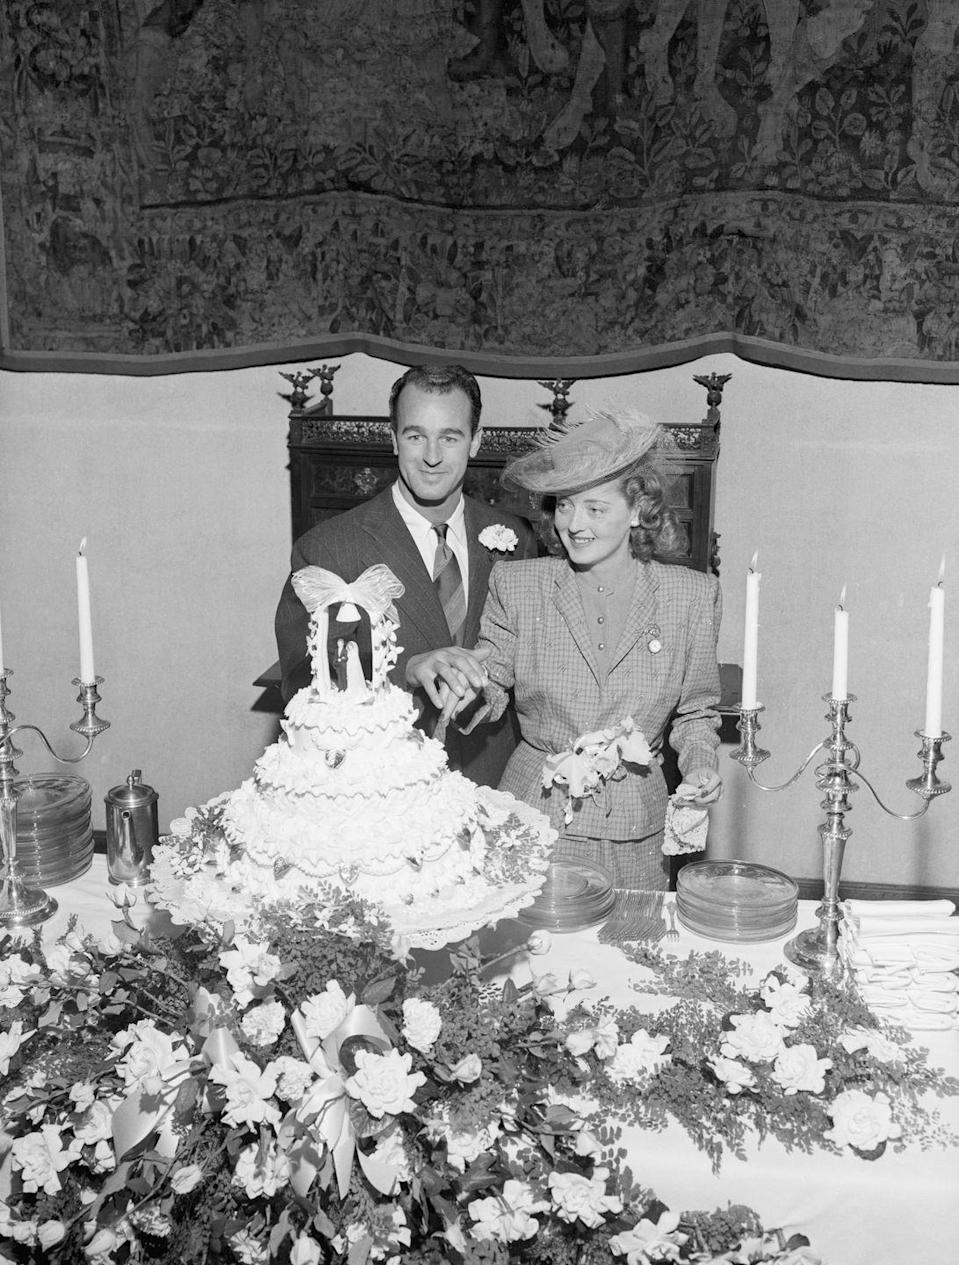 <p>Bette Davis wore a tweed suit and a wide brimmed hat to marry her third husband, William Grant Sherry, during their California ceremony. </p>